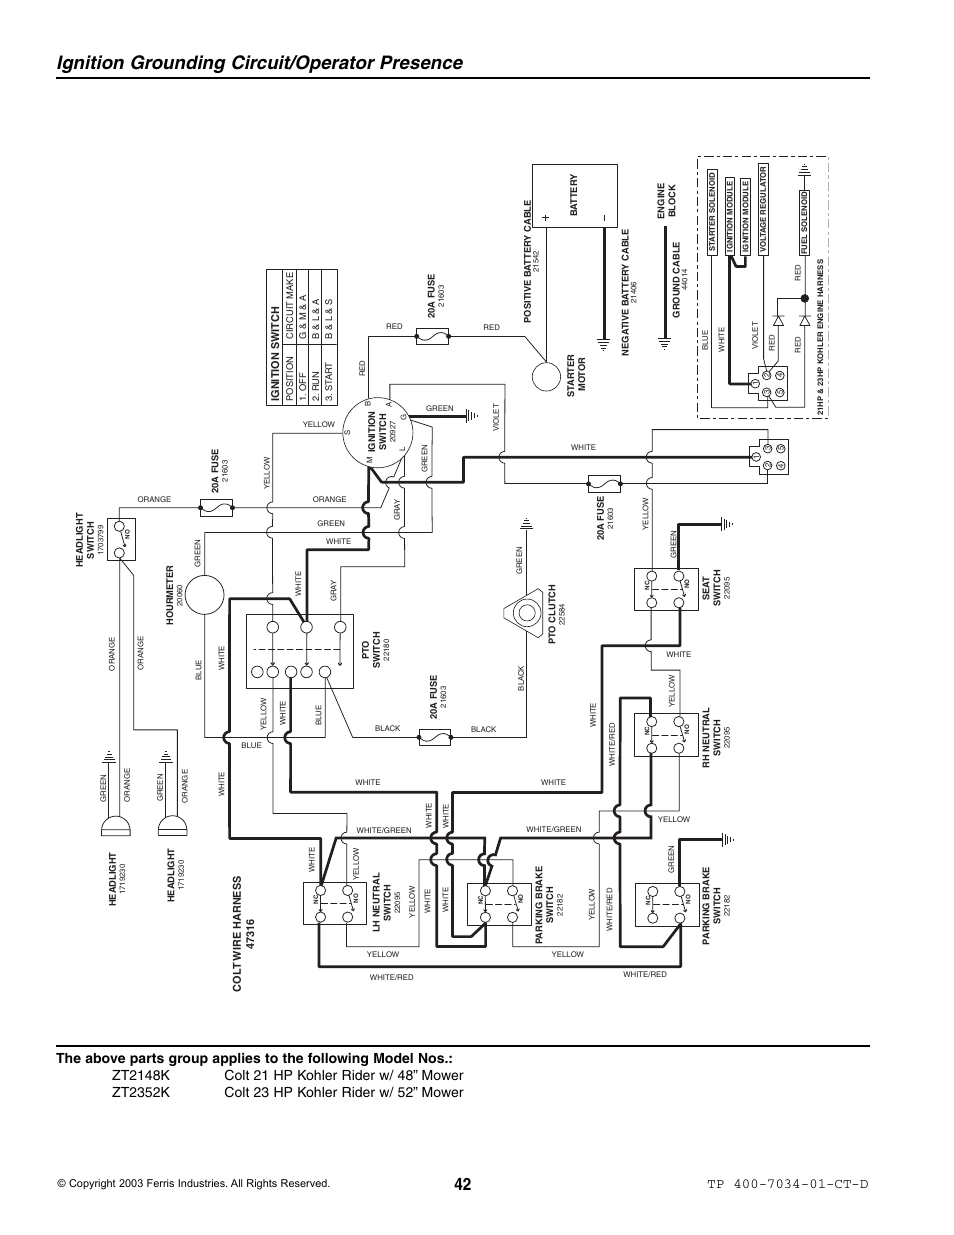 ignition grounding circuit operator presence simplicity zt2148b ignition grounding circuit operator presence simplicity zt2148b user manual page 48 63